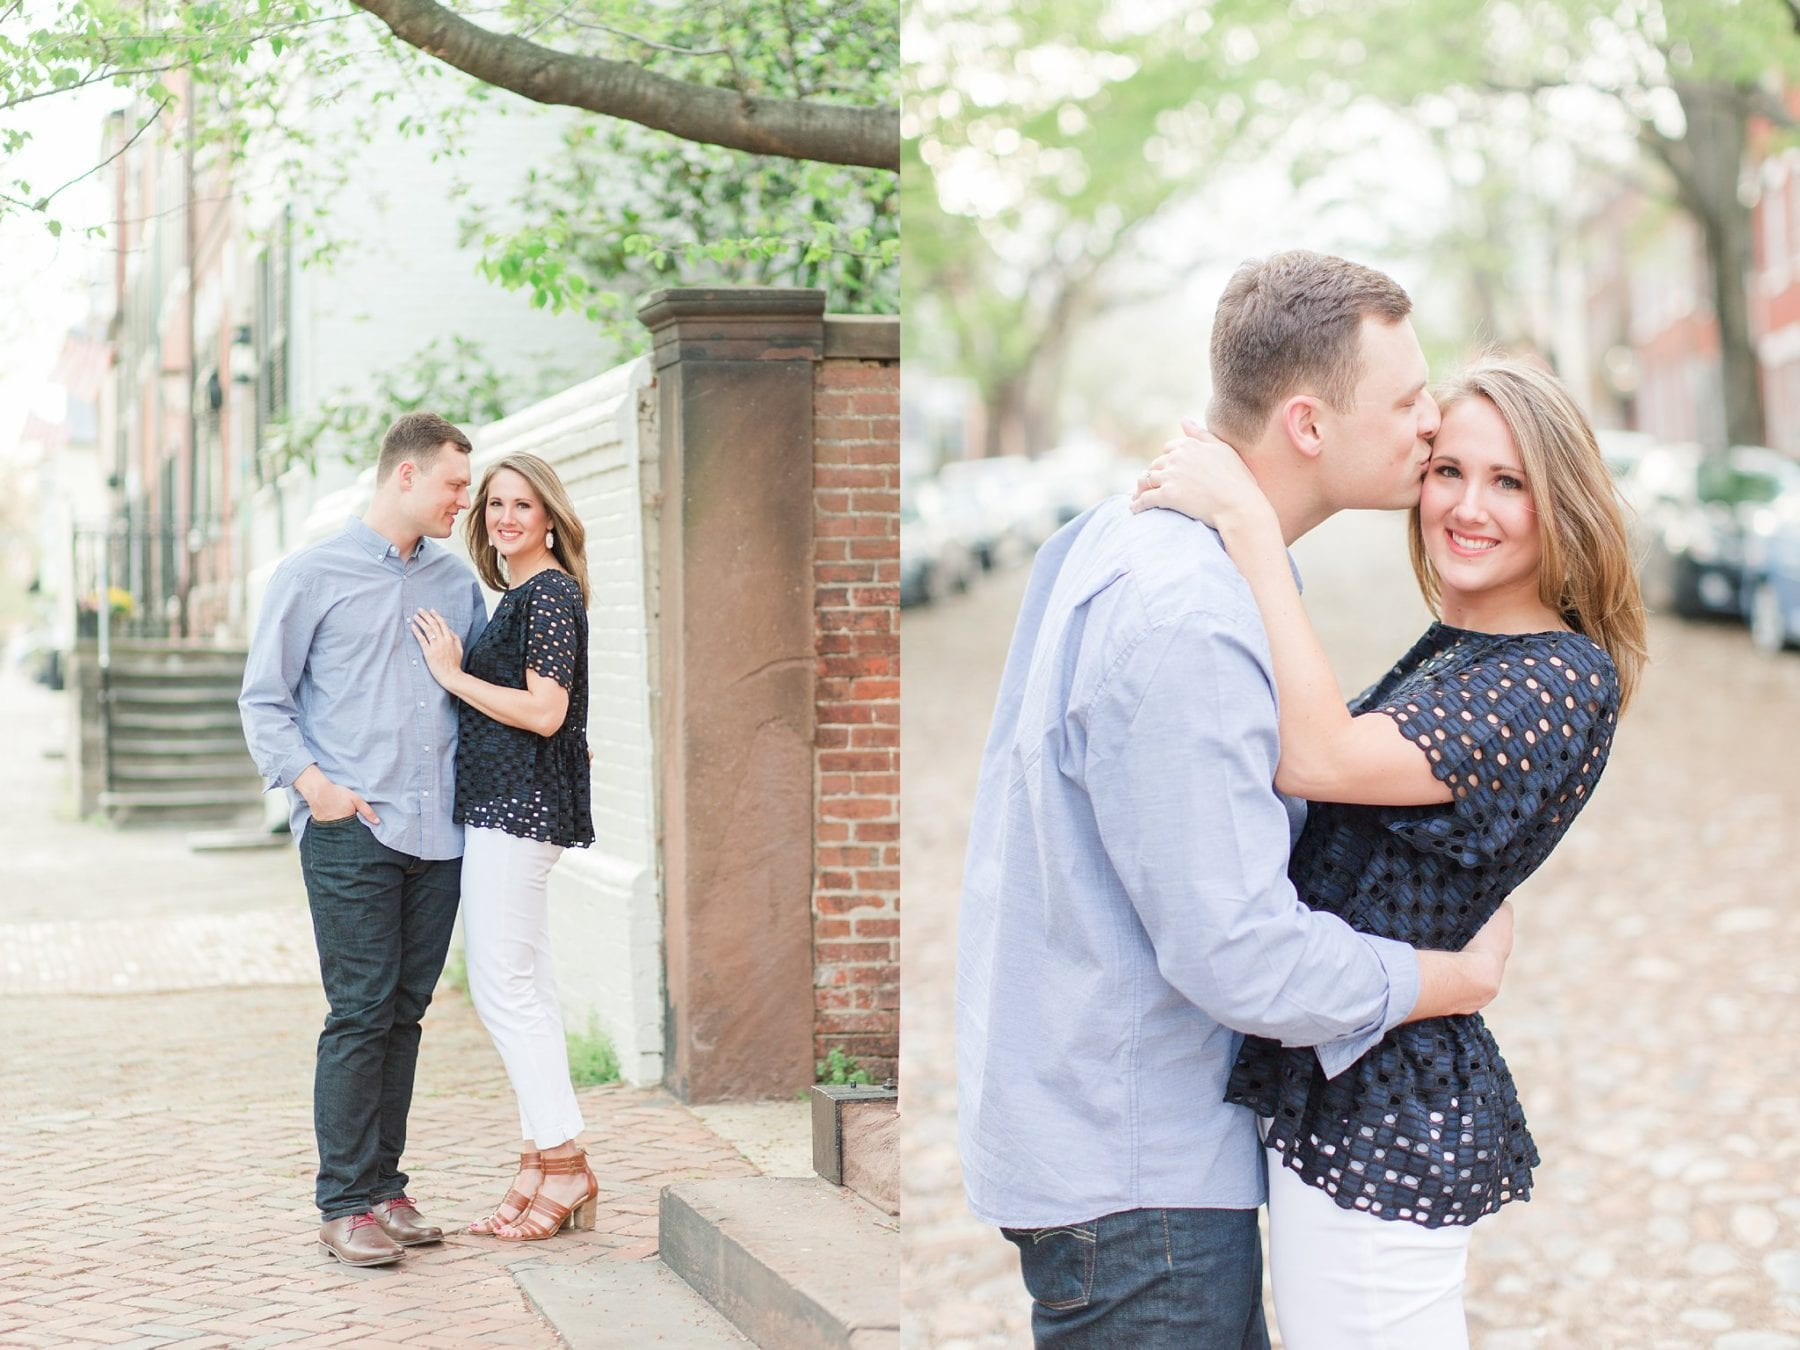 Springtime Old Town Alexandria Engagement Session Matt & Maxie Megan Kelsey Photography-201.jpg